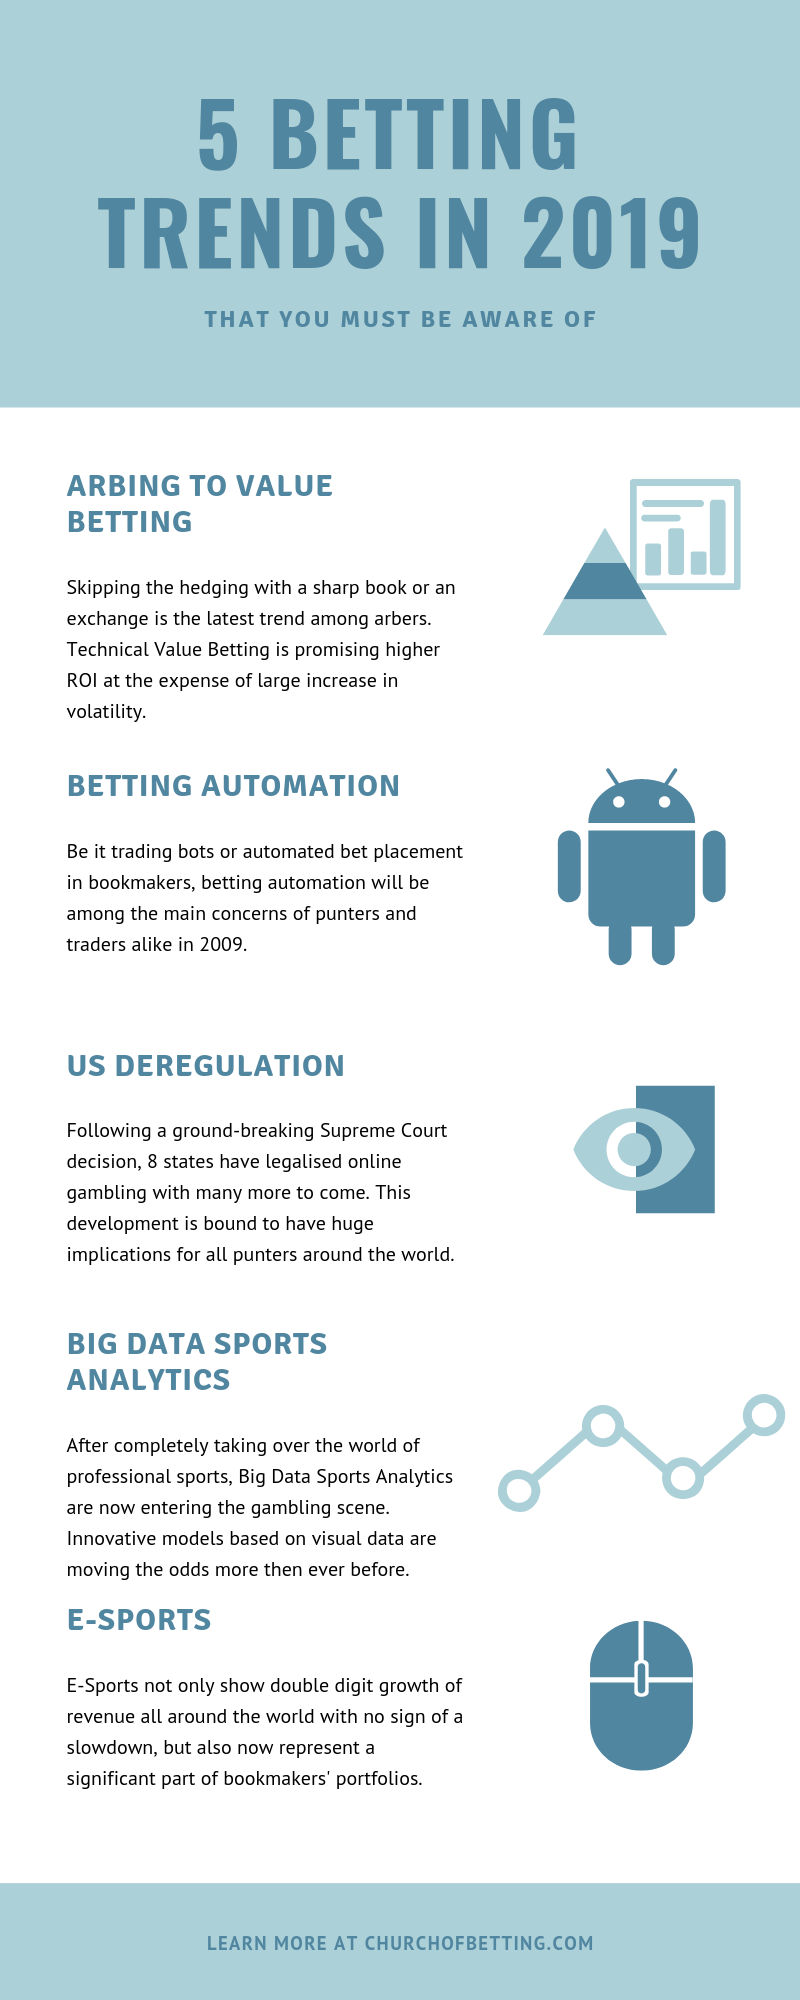 5 Betting Trends in 2019